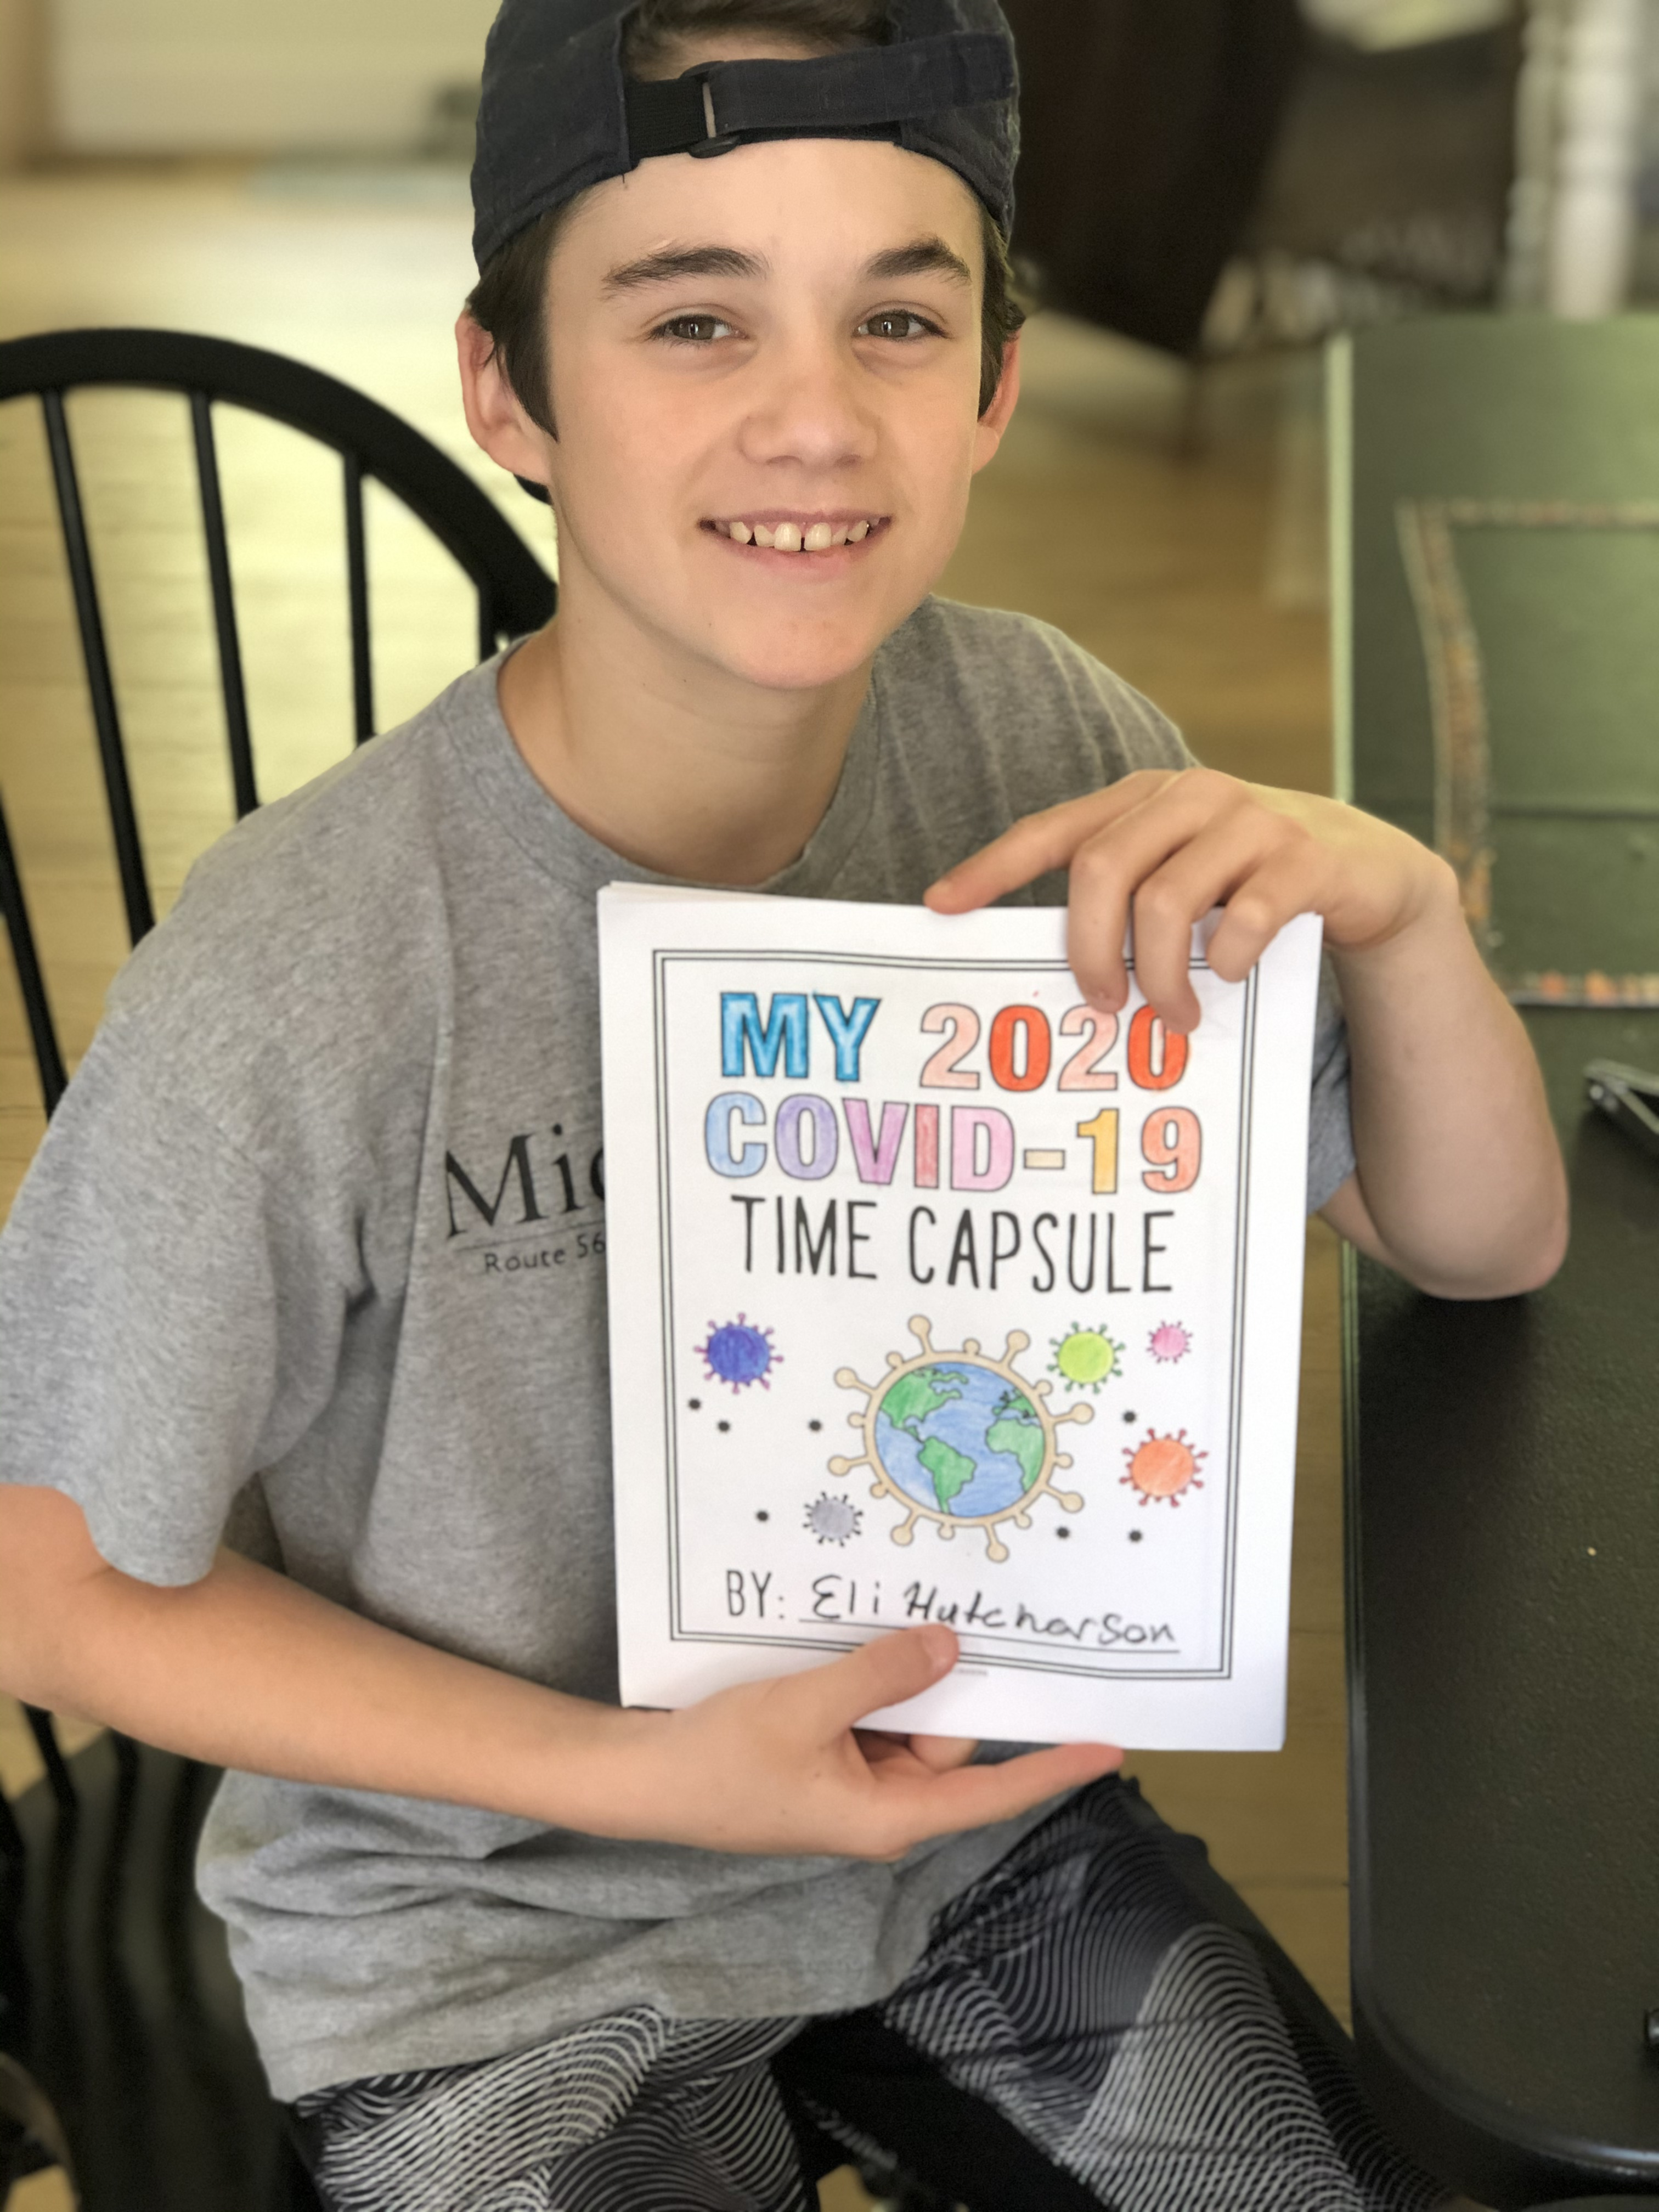 Covid 19 Time Capsule Activity For Kids And Adults